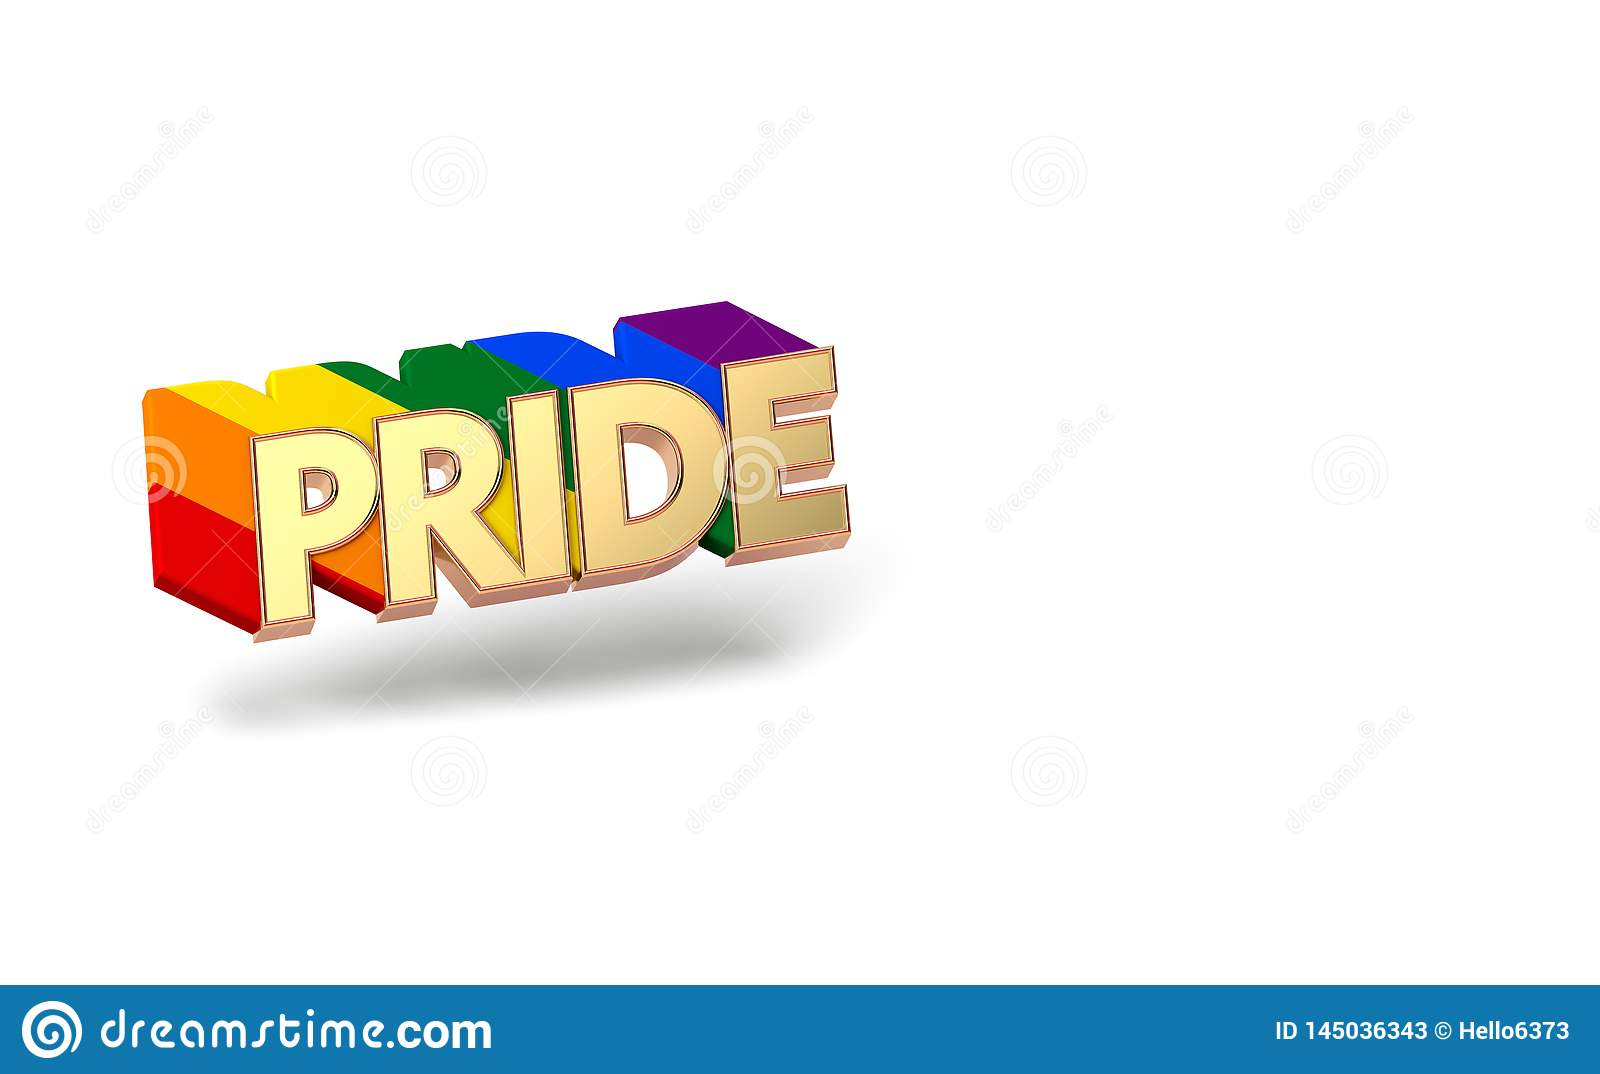 Golden PRIDE word with rainbow outline. LGBTQ pride month symbol concept. Isolated on white background with copy space. 3D